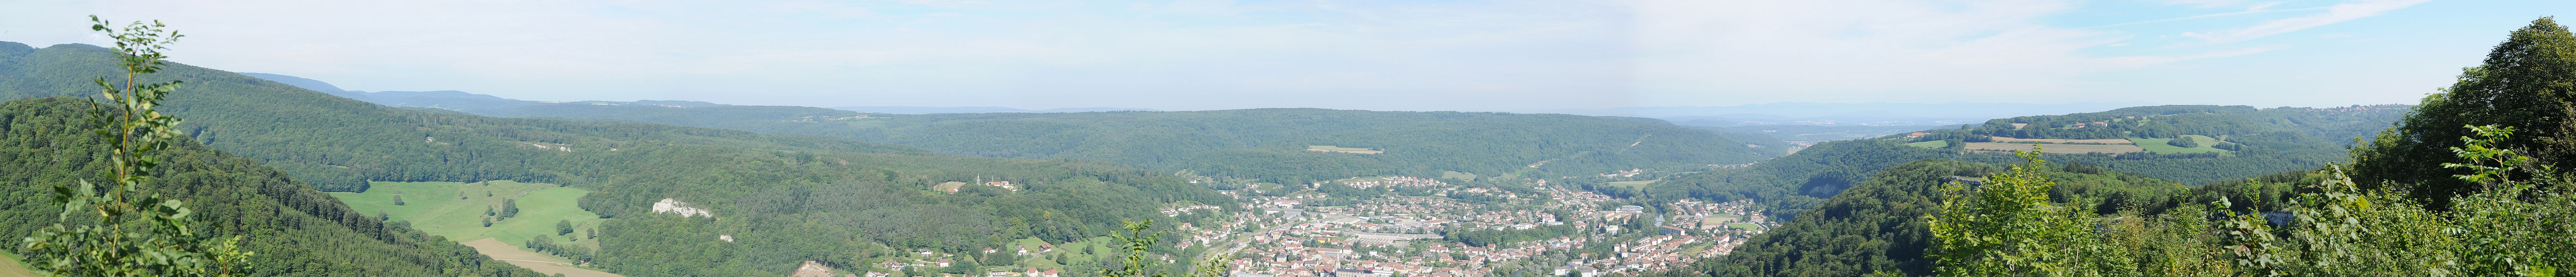 This file was uploaded  with Commonist.    Batterie des Roches: Panorama.